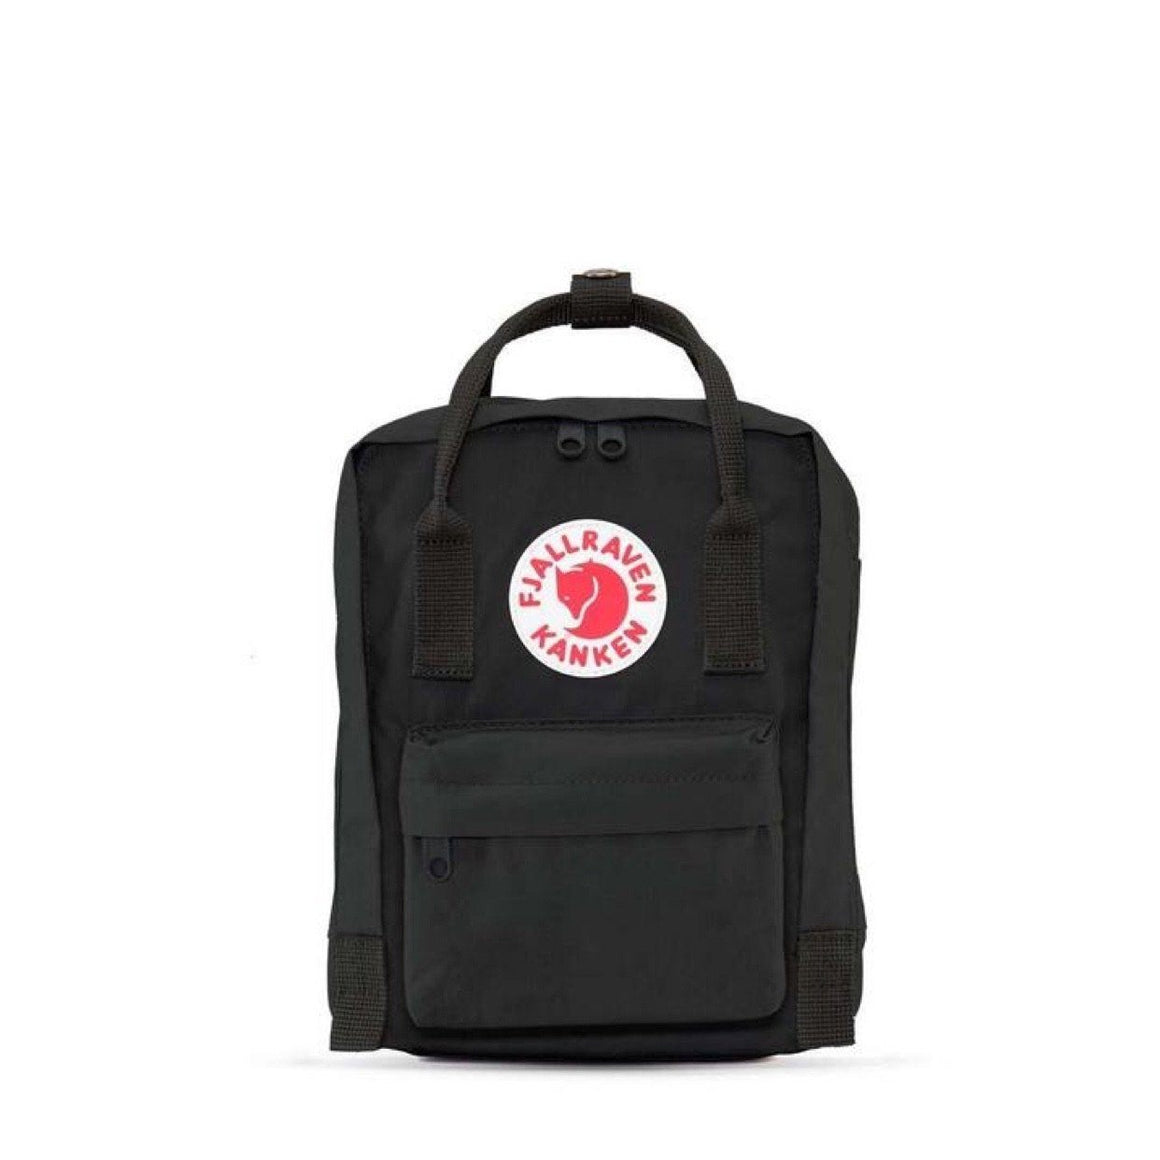 Fjallraven - Kanken Mini 7L Back Pack - Black Backpack Fjallraven